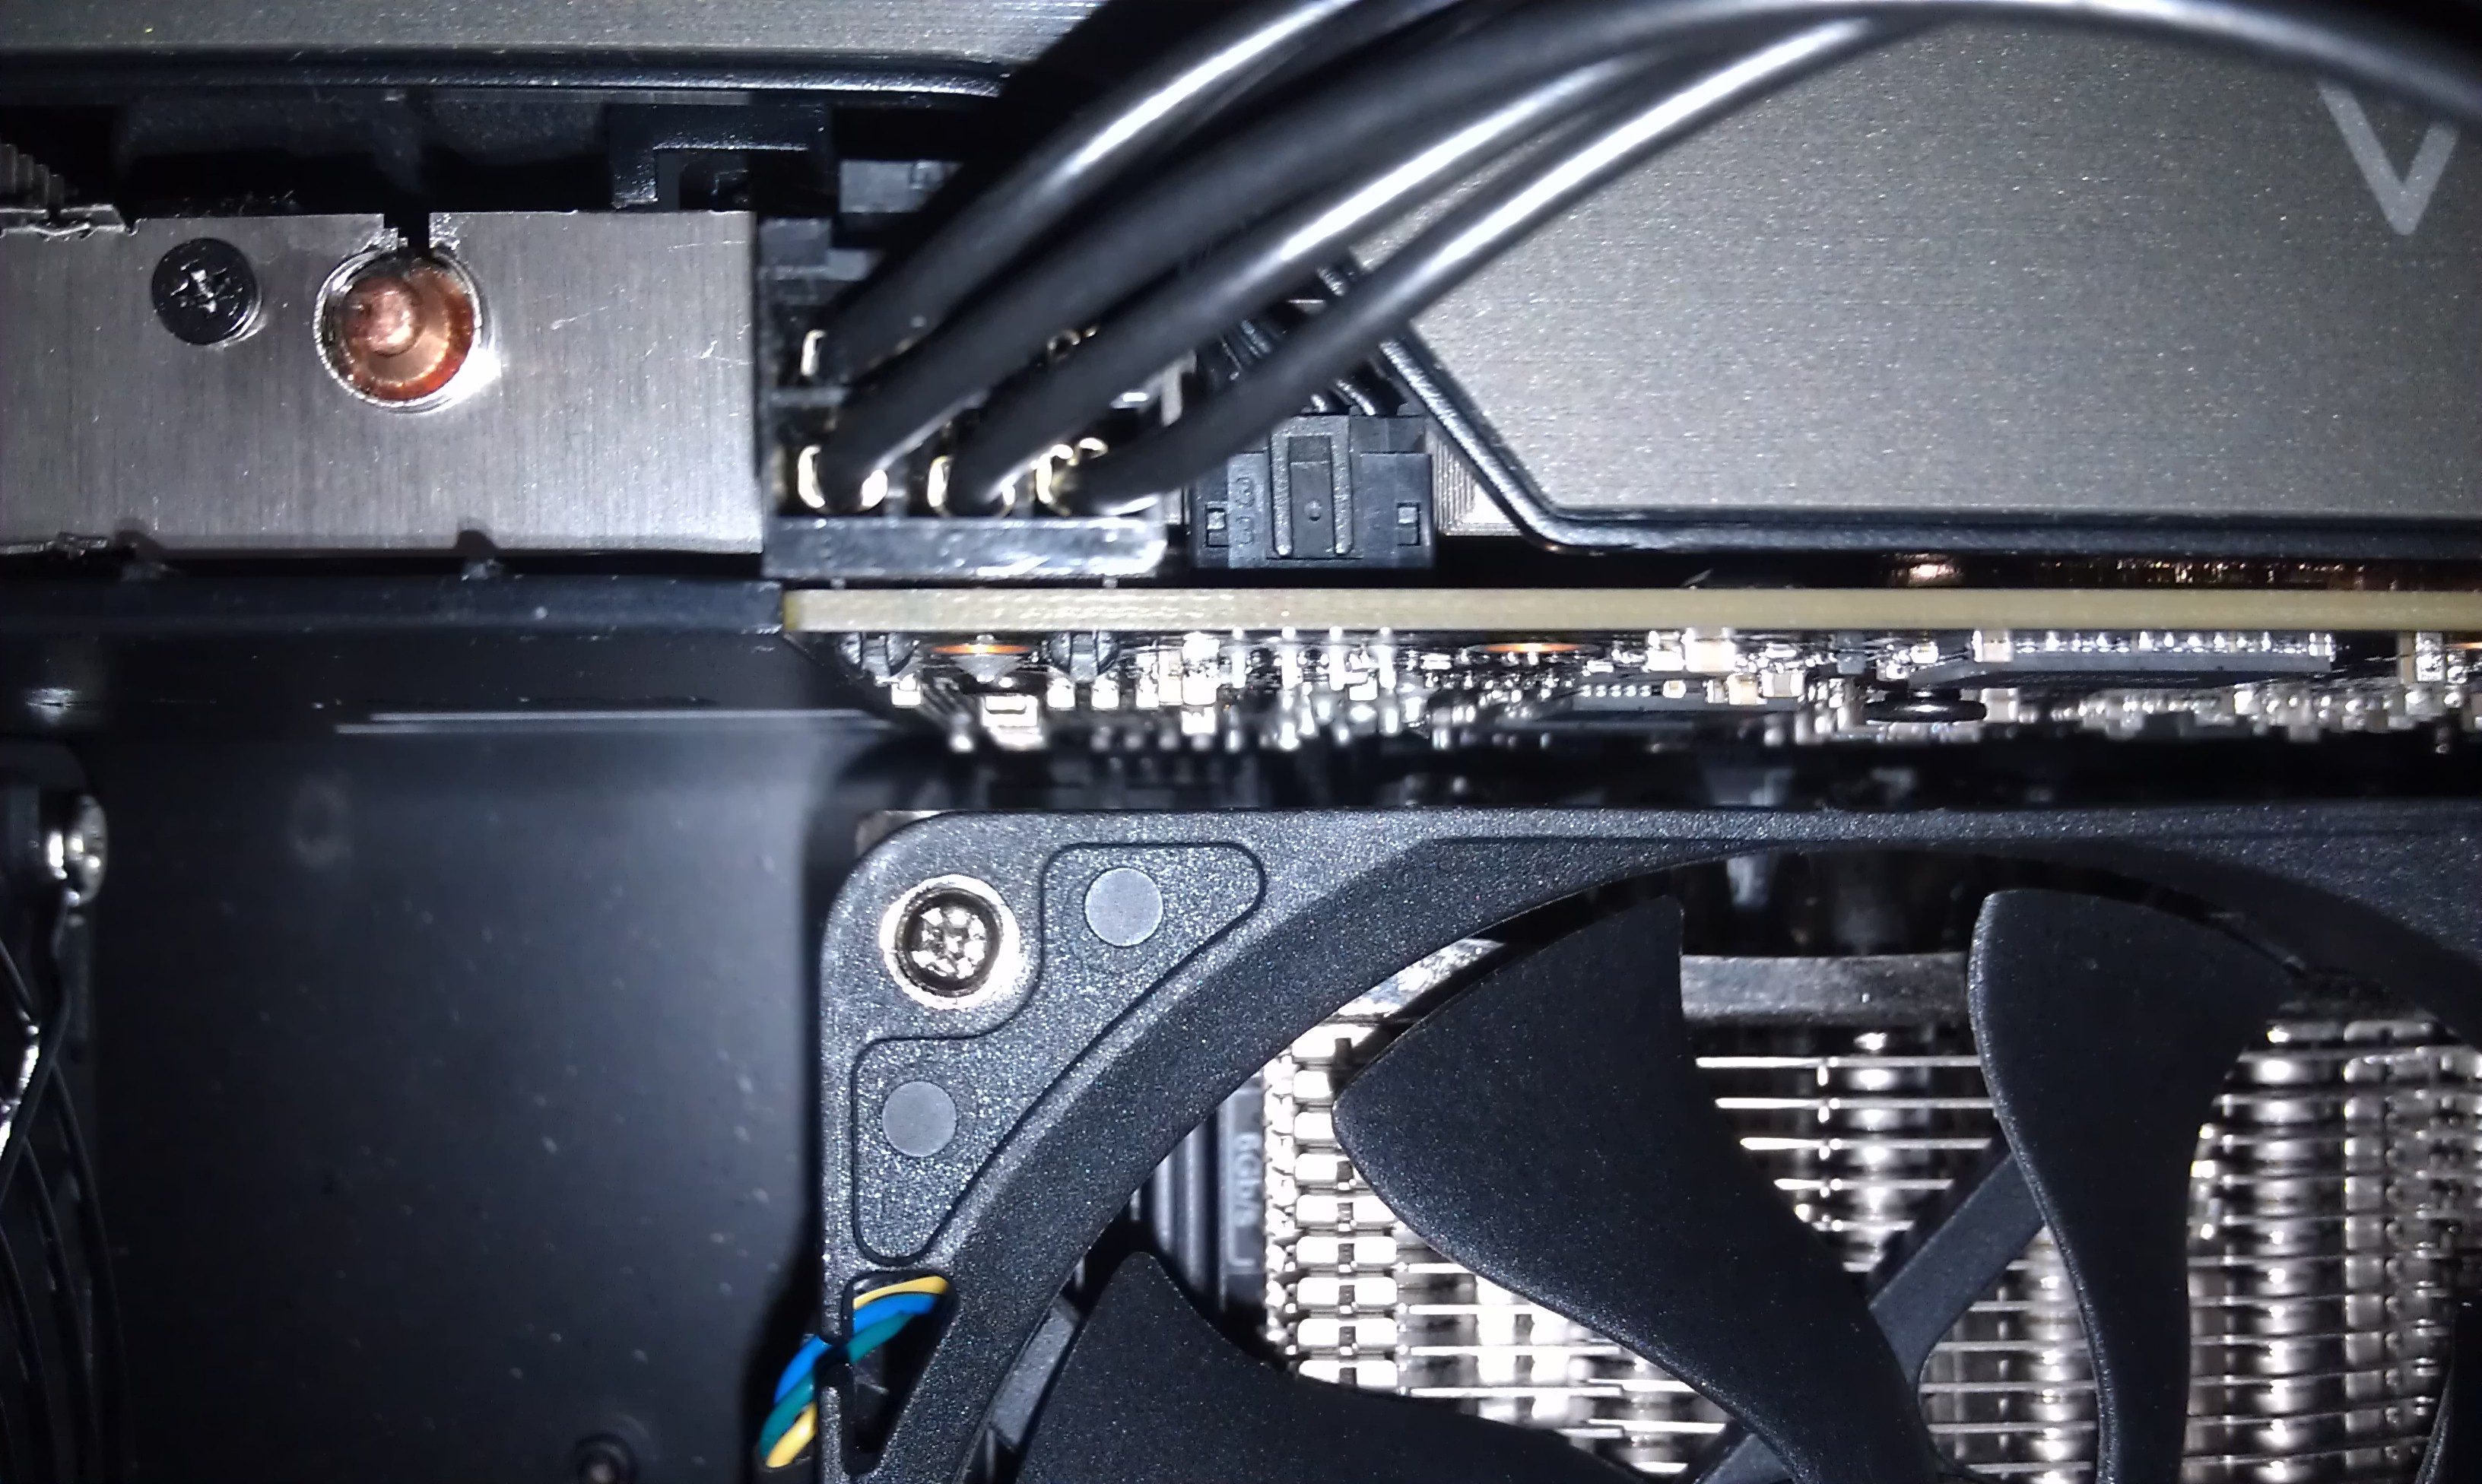 Space between Prolimatech Samuel 17 and EVGA GTX660 FTW Signature 2 on a Gigabyte H77N-WIFI mITX motherboard